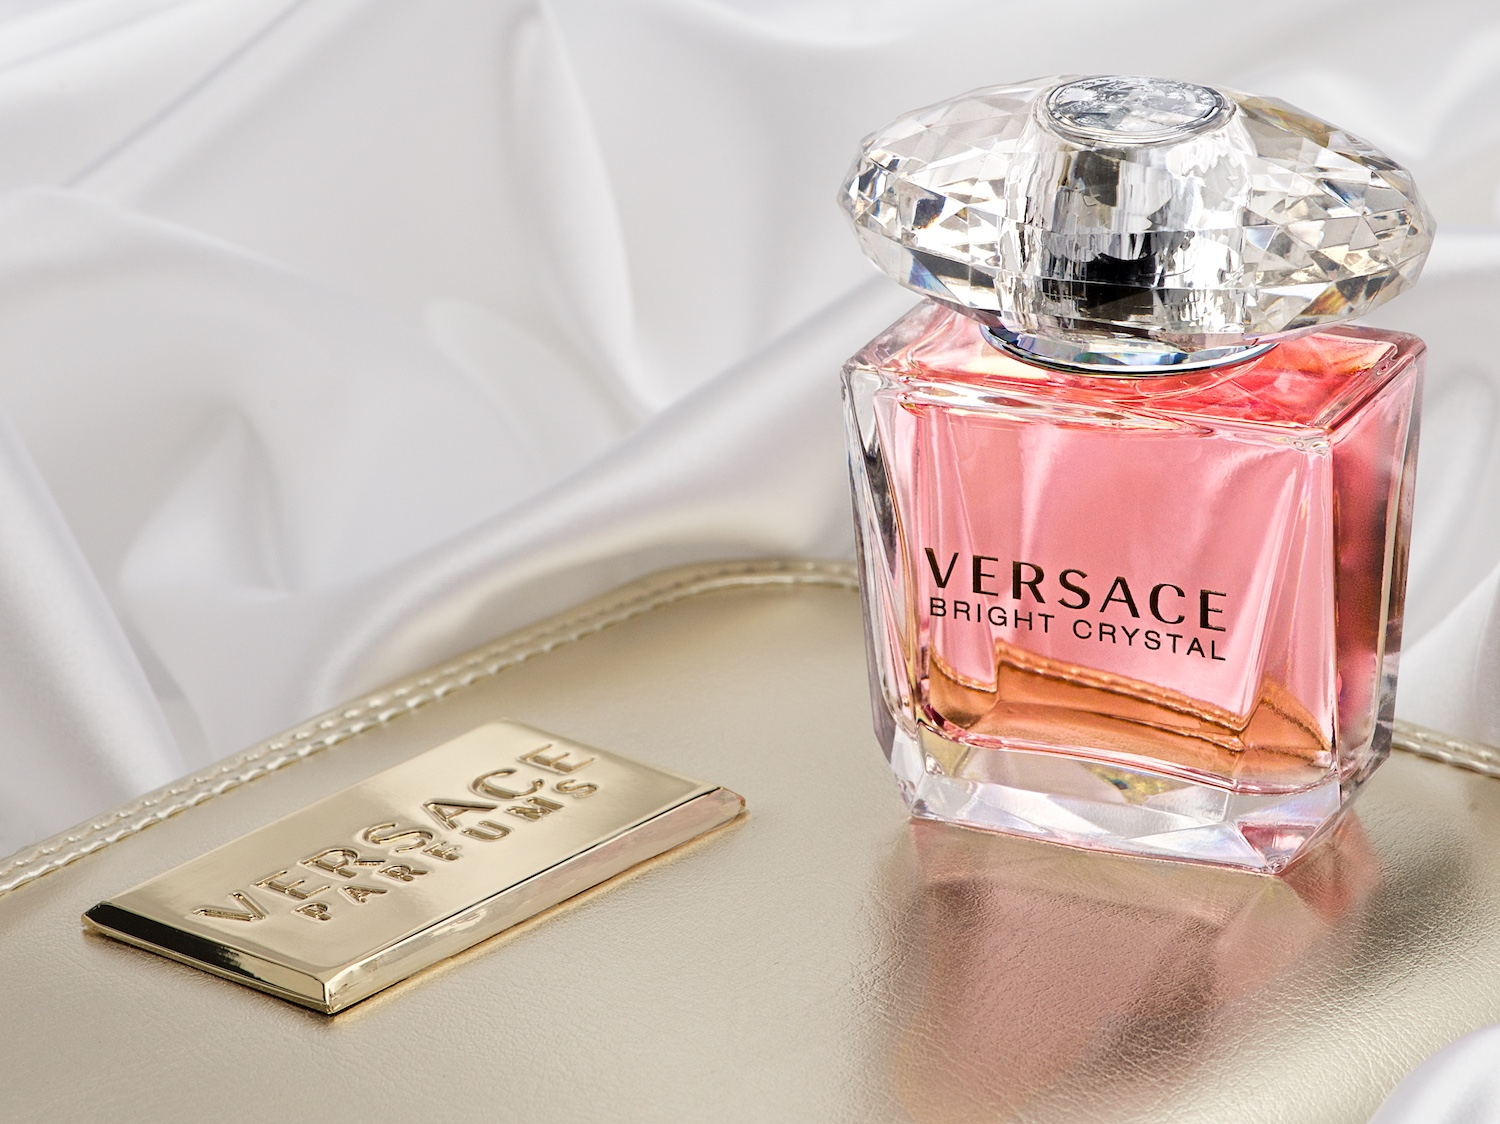 Versace Bright Crystal perfume bottle on gold case and satin by Bret Doss Commercial Product Photography Seattle